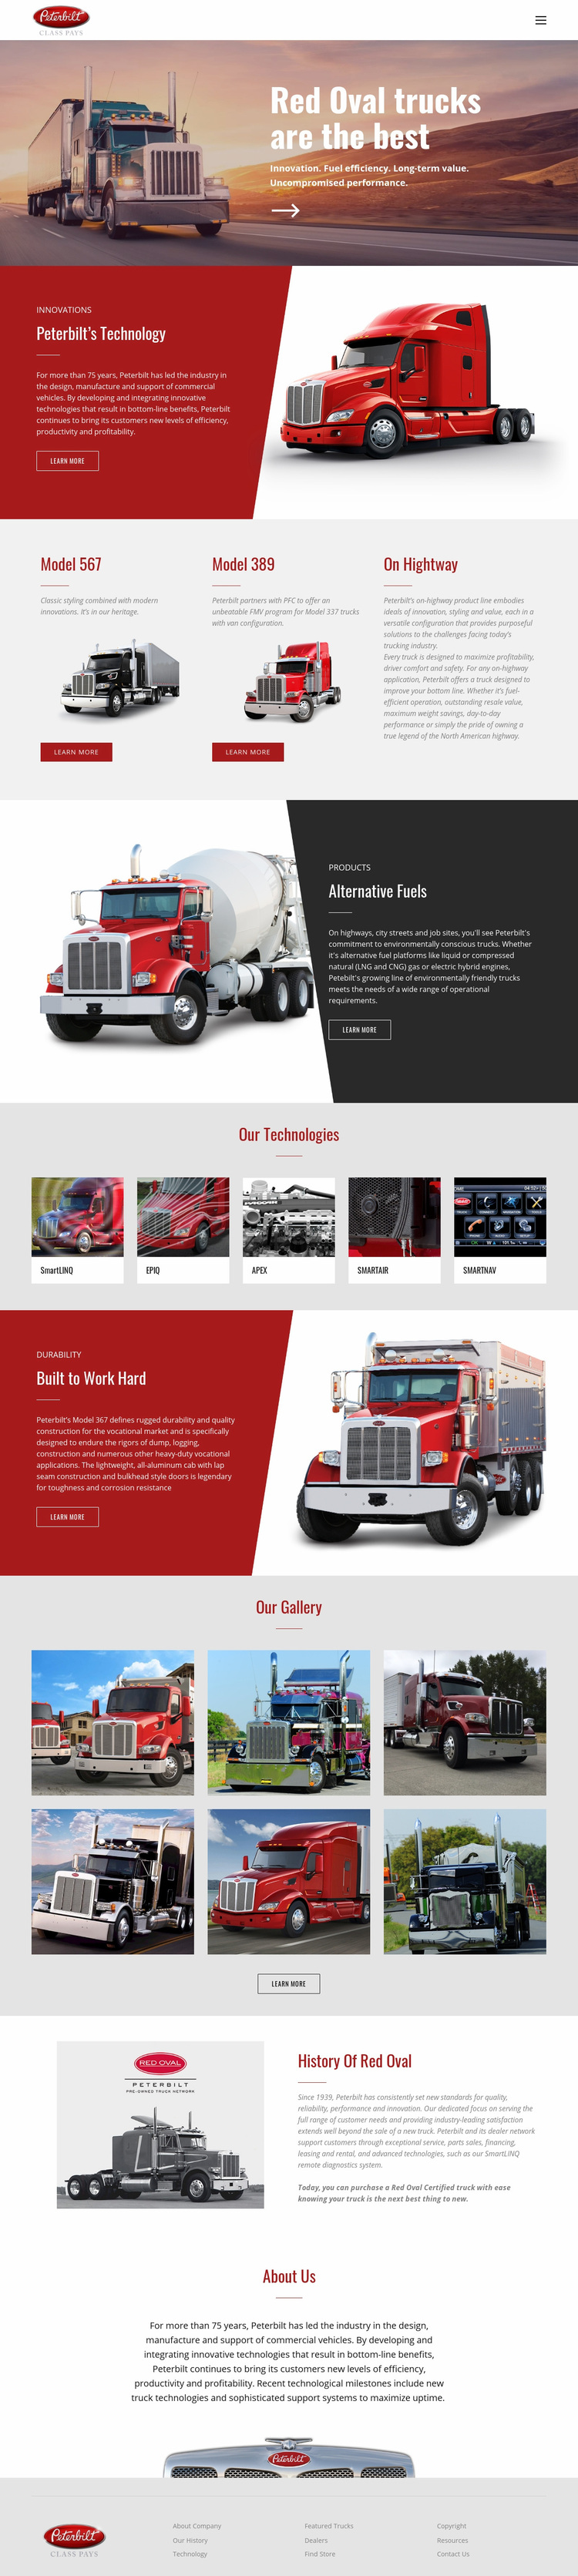 Red oval truck transportaion Web Page Designer